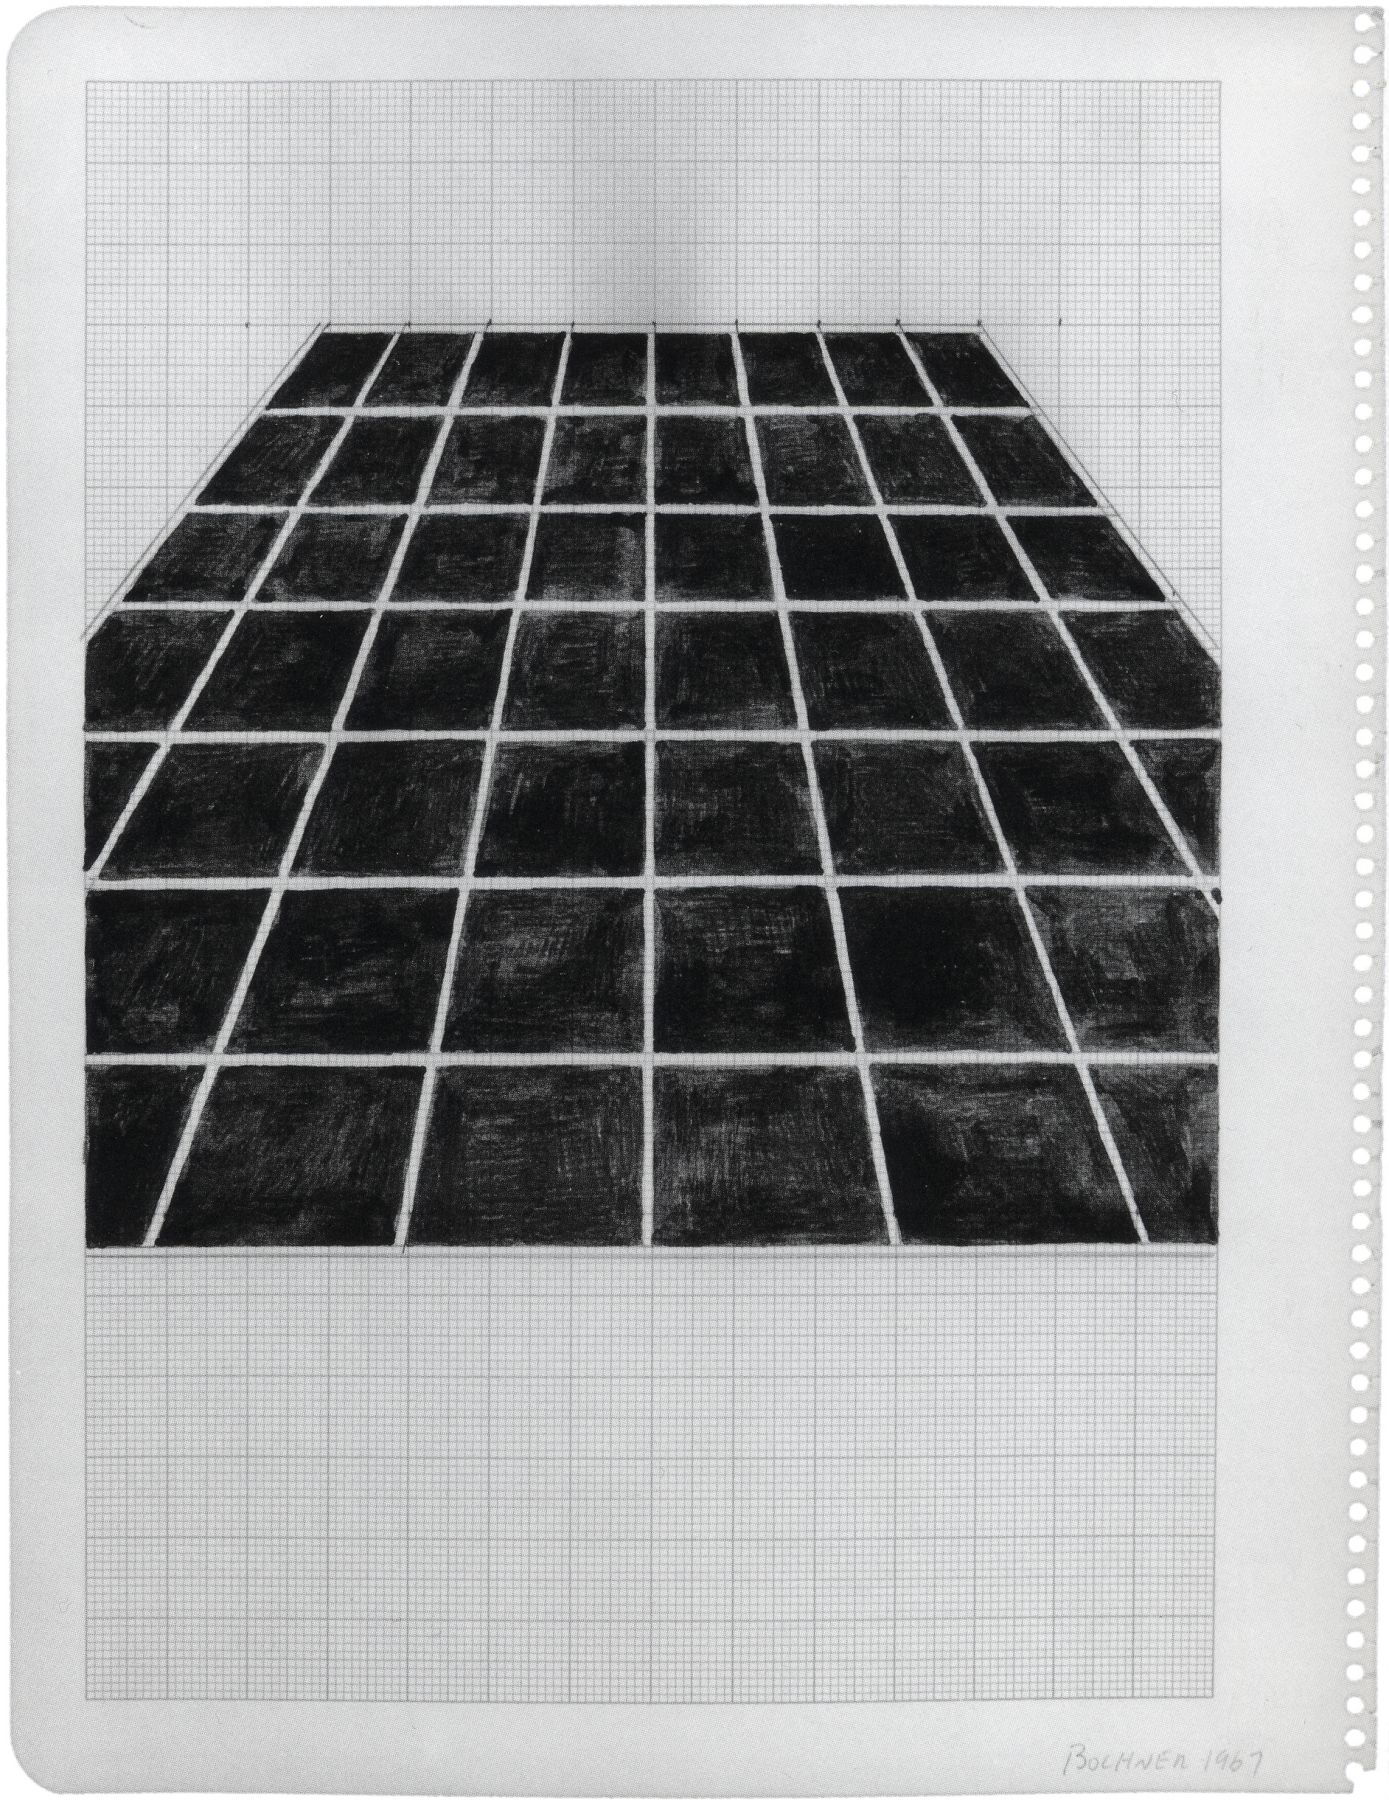 Mel Bochner,Study for Photo Piece (One Point Perspective), 1967.